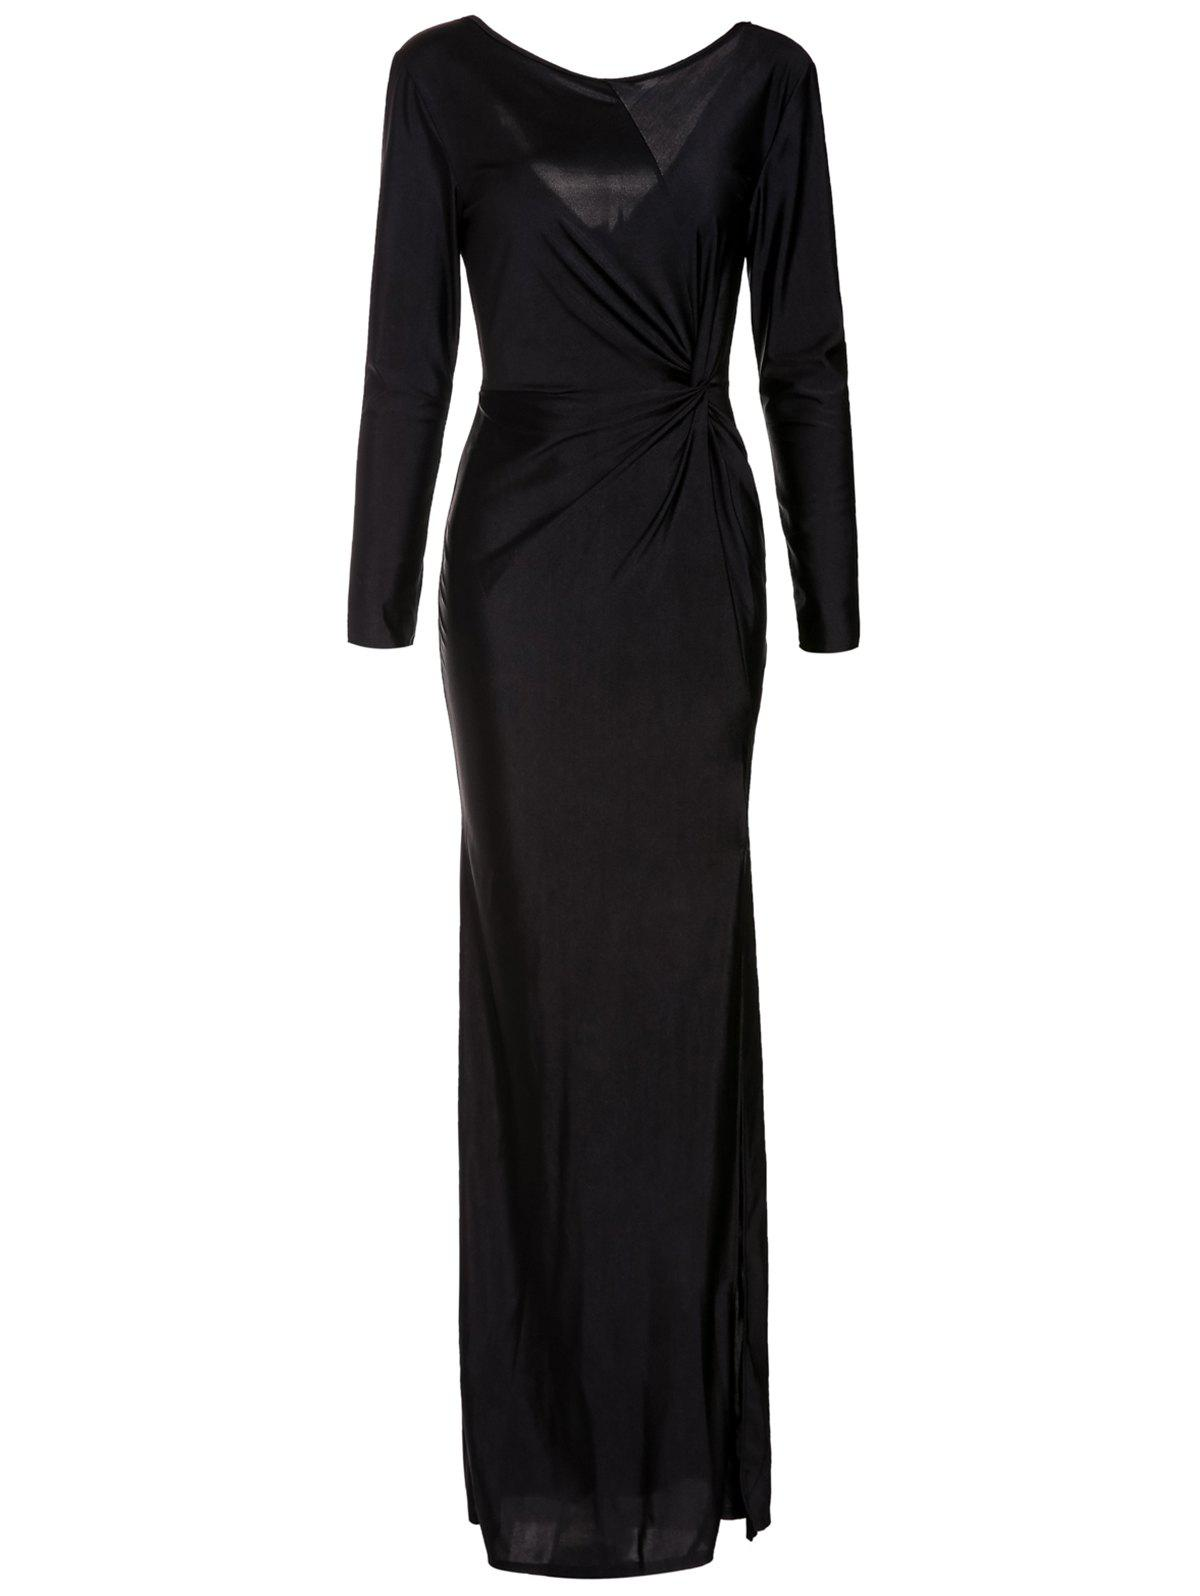 Elegant Long Sleeve Scoop Neck Black High Slit Ruched Women's Maxi Dress - BLACK ONE SIZE(FIT SIZE XS TO M)